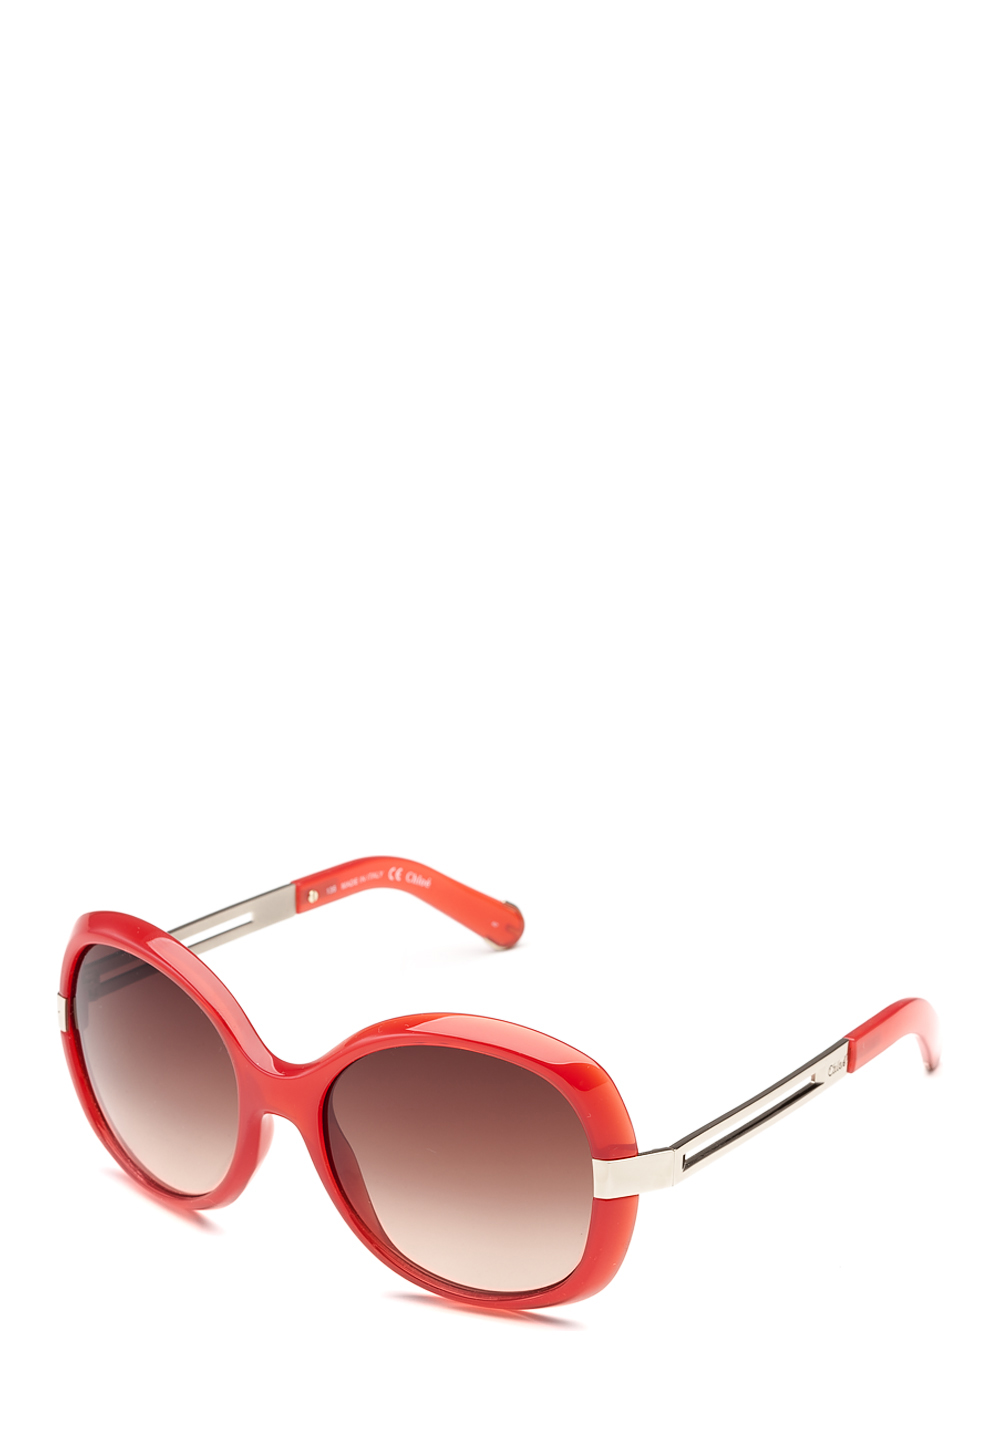 Sonnenbrille Ce662S, UV 400, coral rot